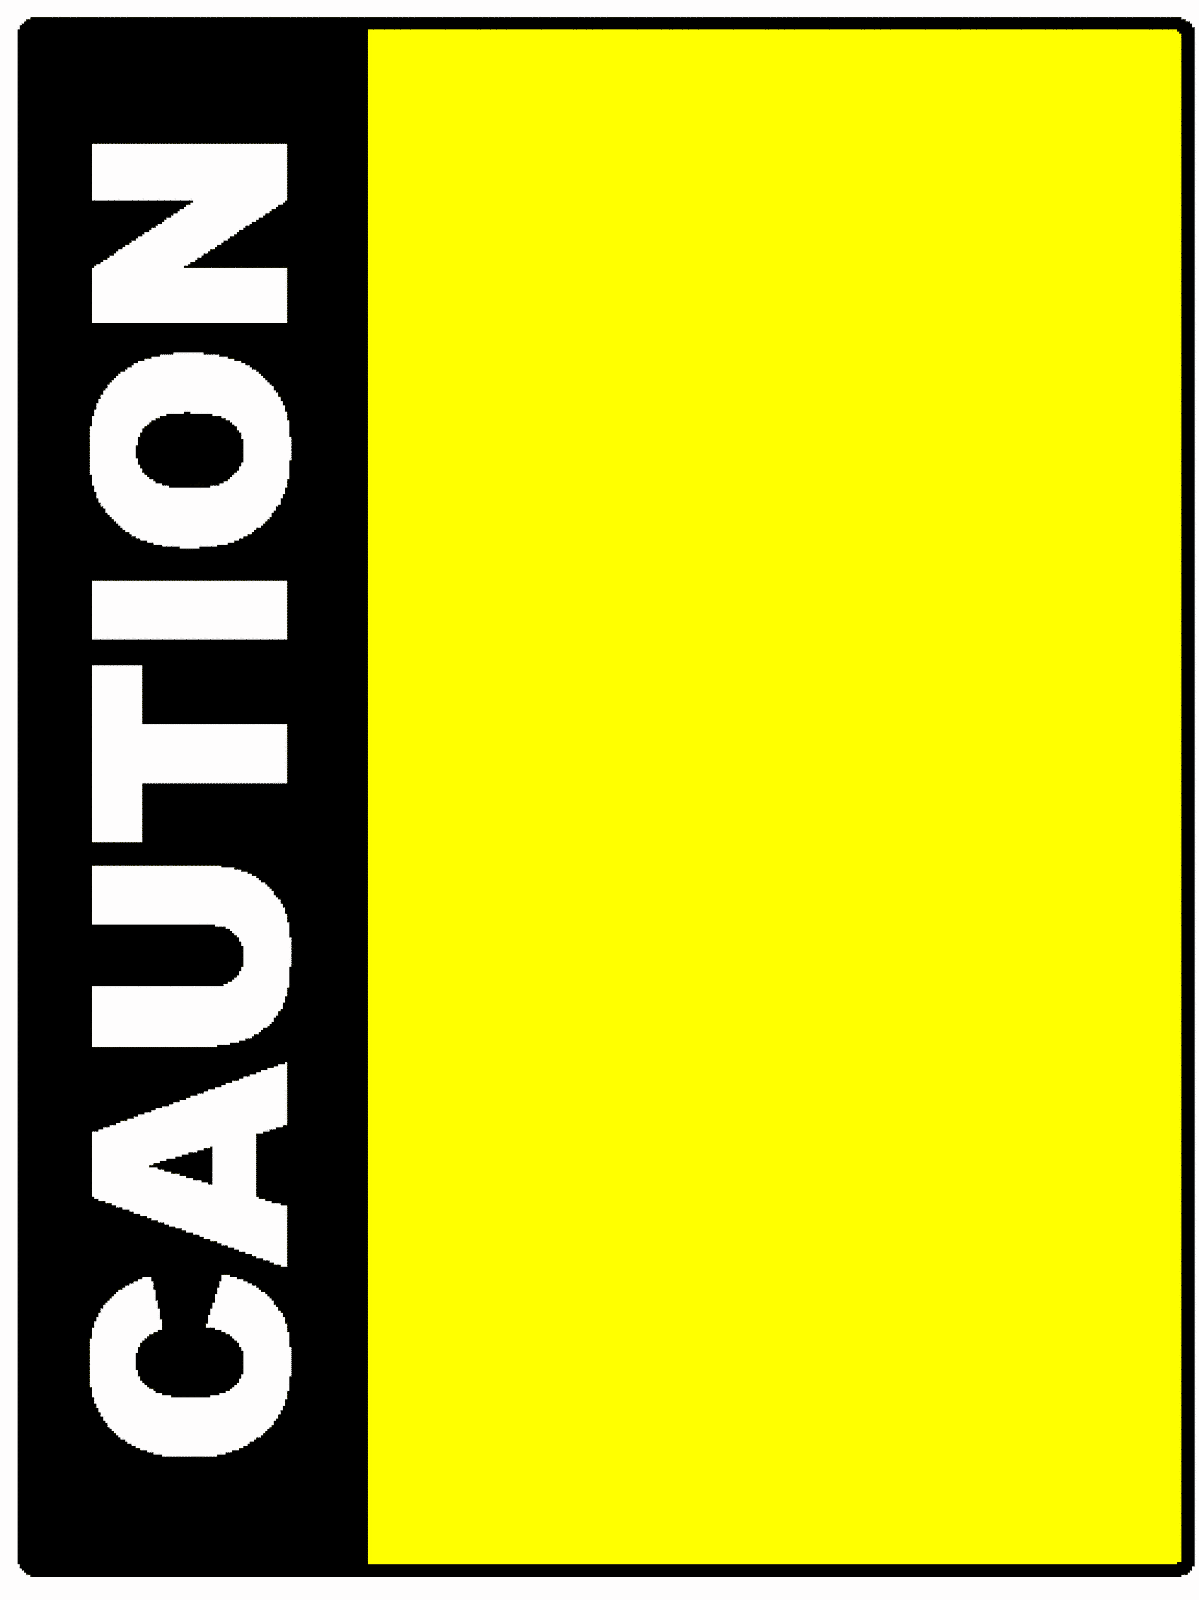 Caution Tape Transparent Png